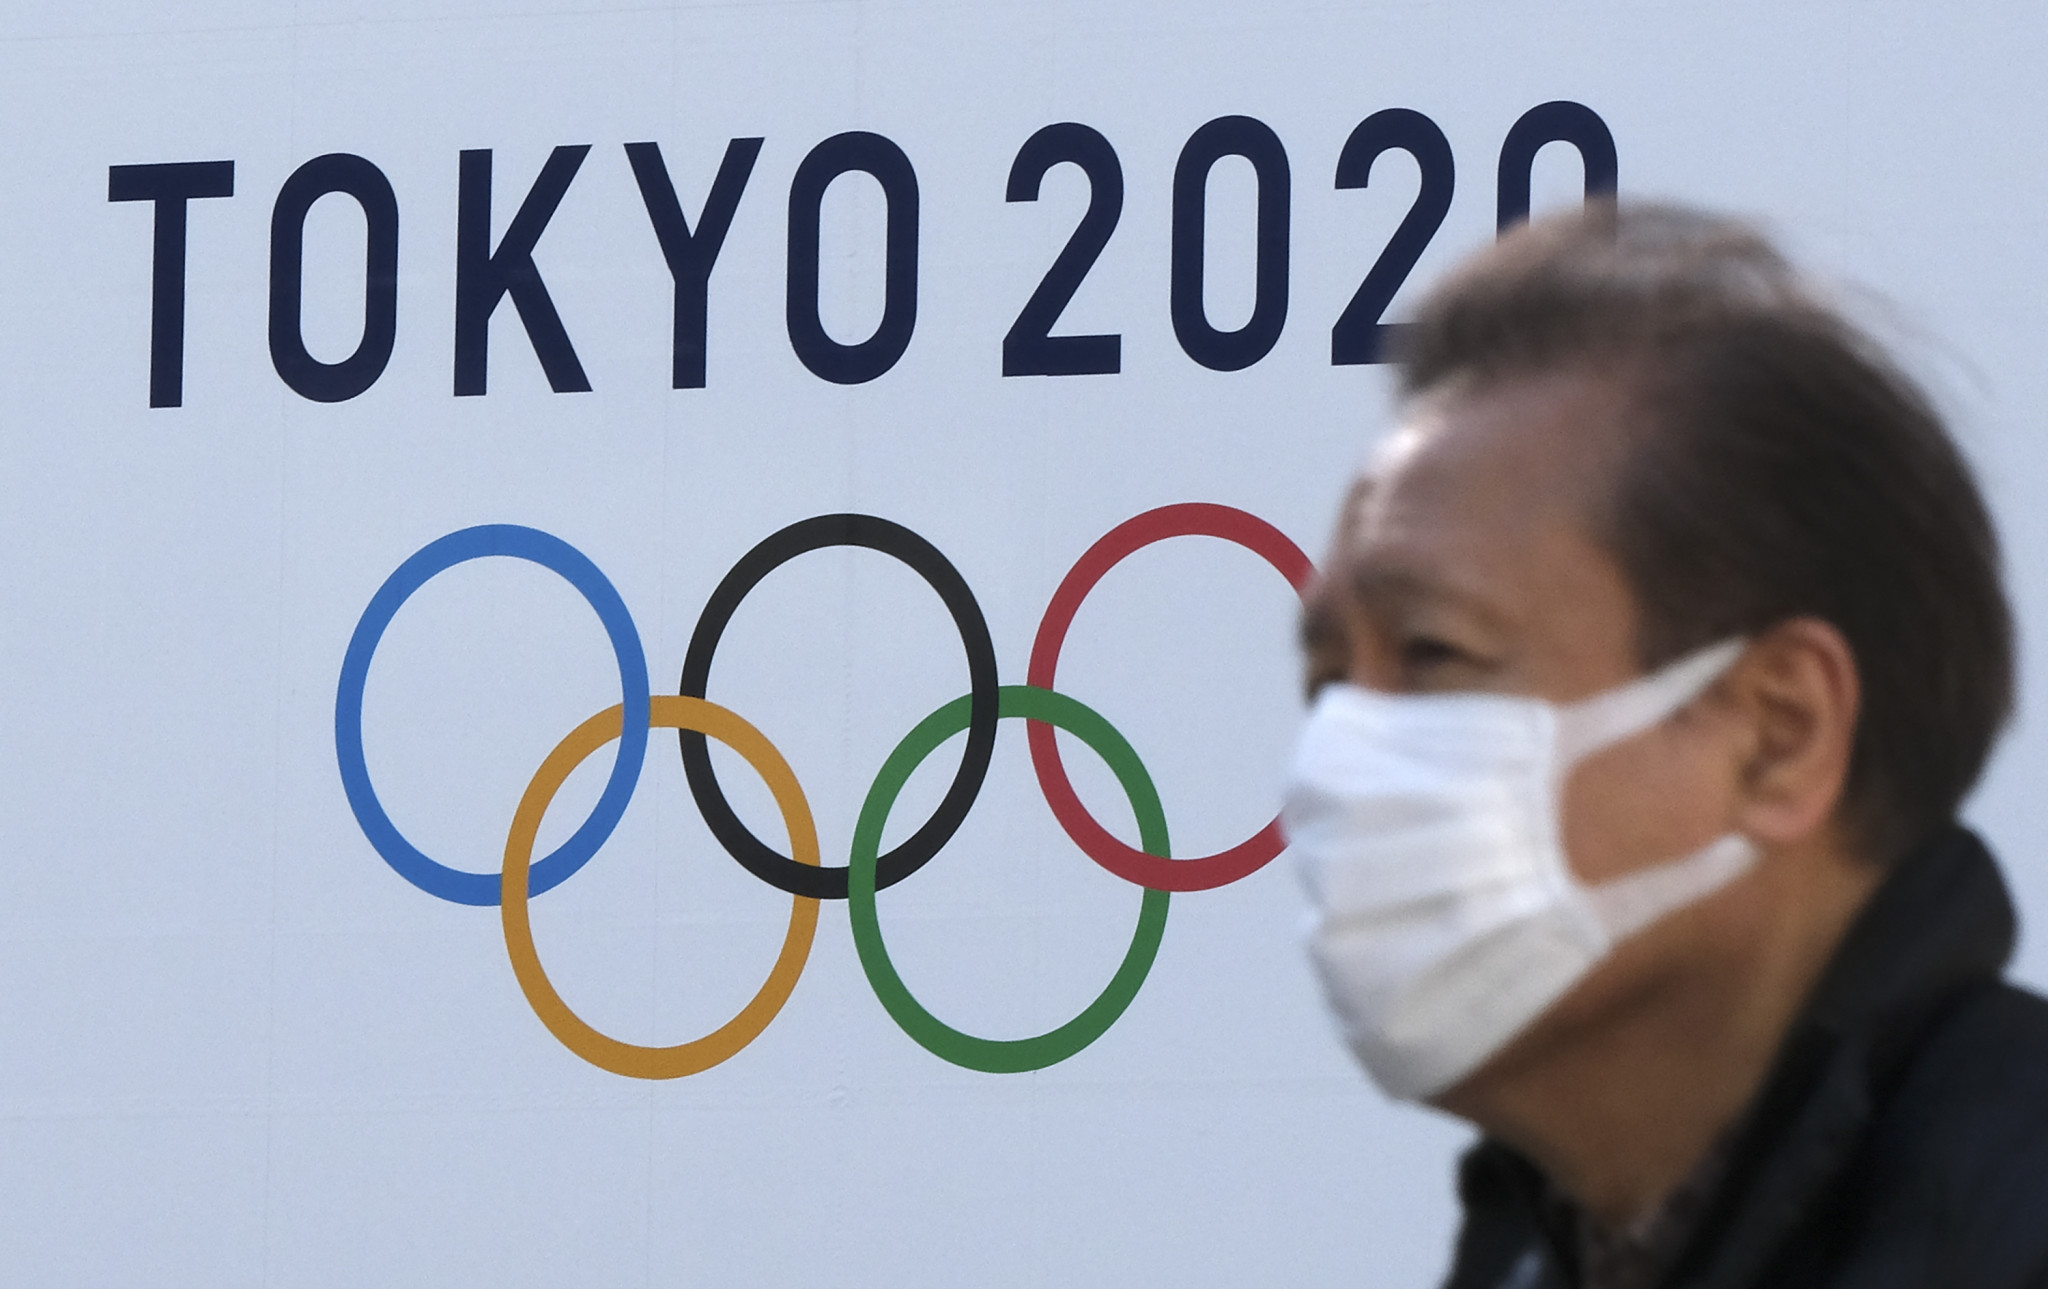 Around 1,000 volunteers for the Tokyo 2020 Olympics have quit over the past month ©Getty Images